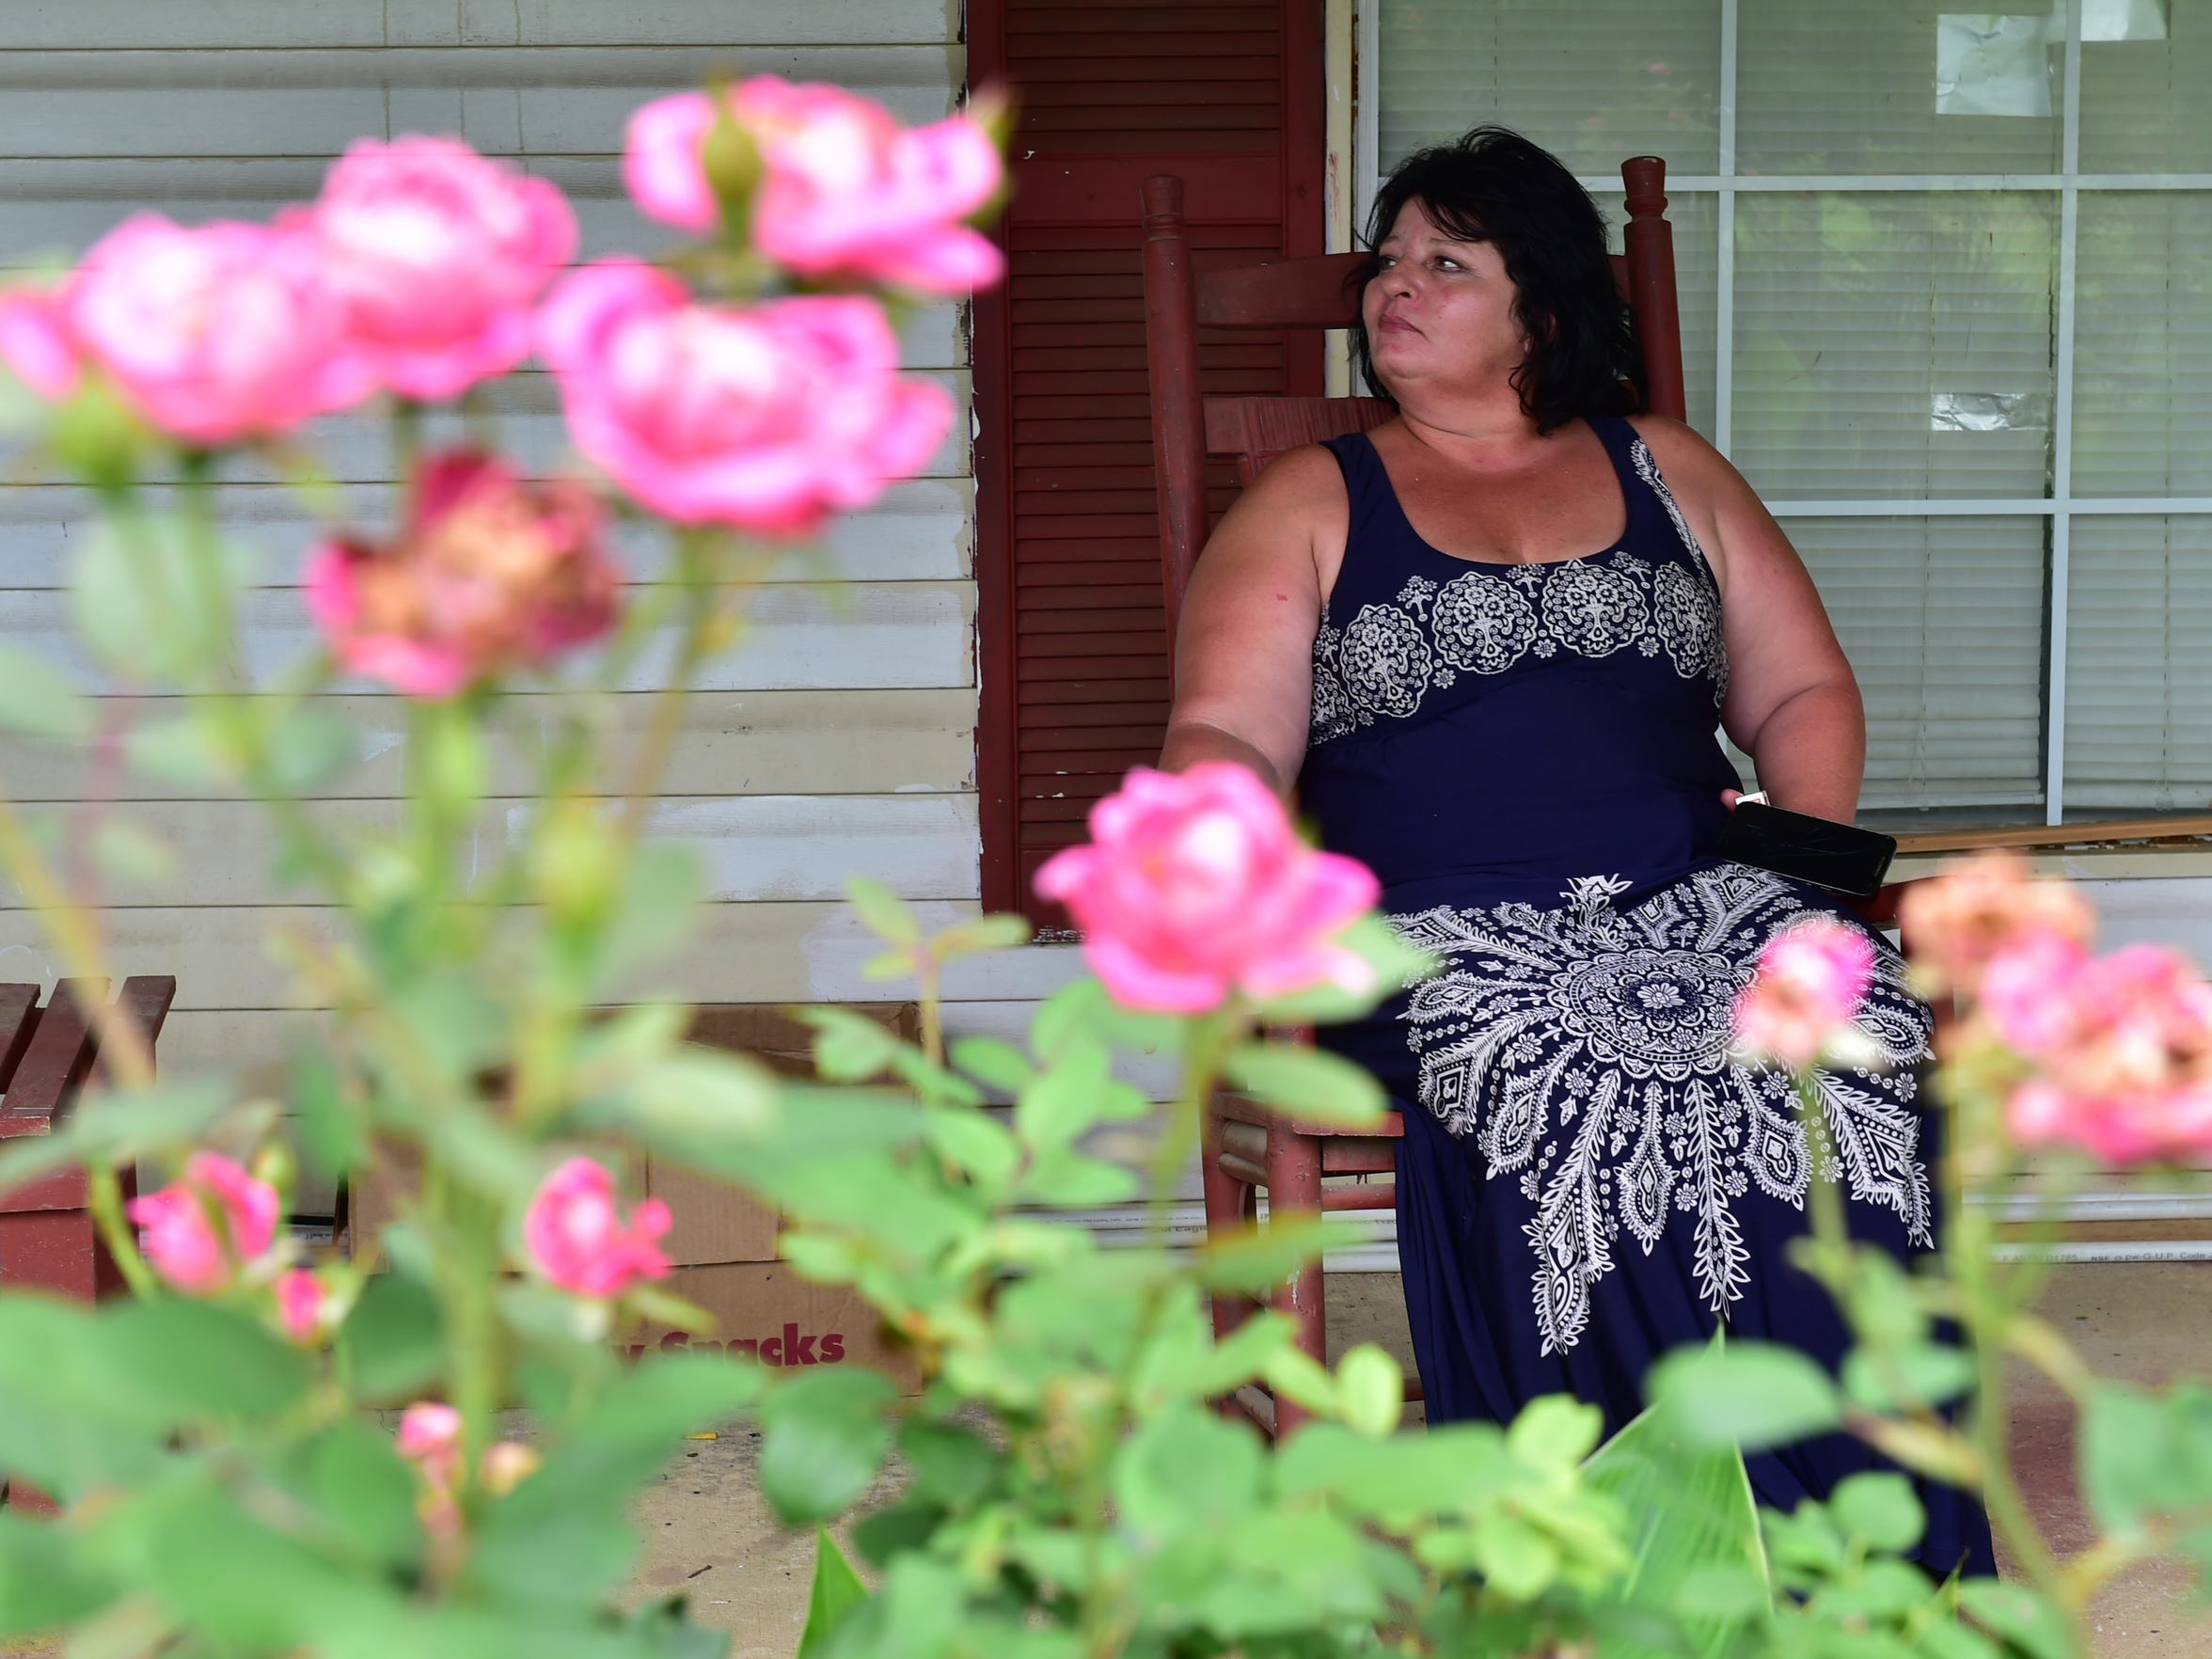 Marty Jean Pettit sits in a rocking chair on the porch of the Mantachie house where she's living temporarily. She has been struggling to access services for herself and her son, who has a mental illness.